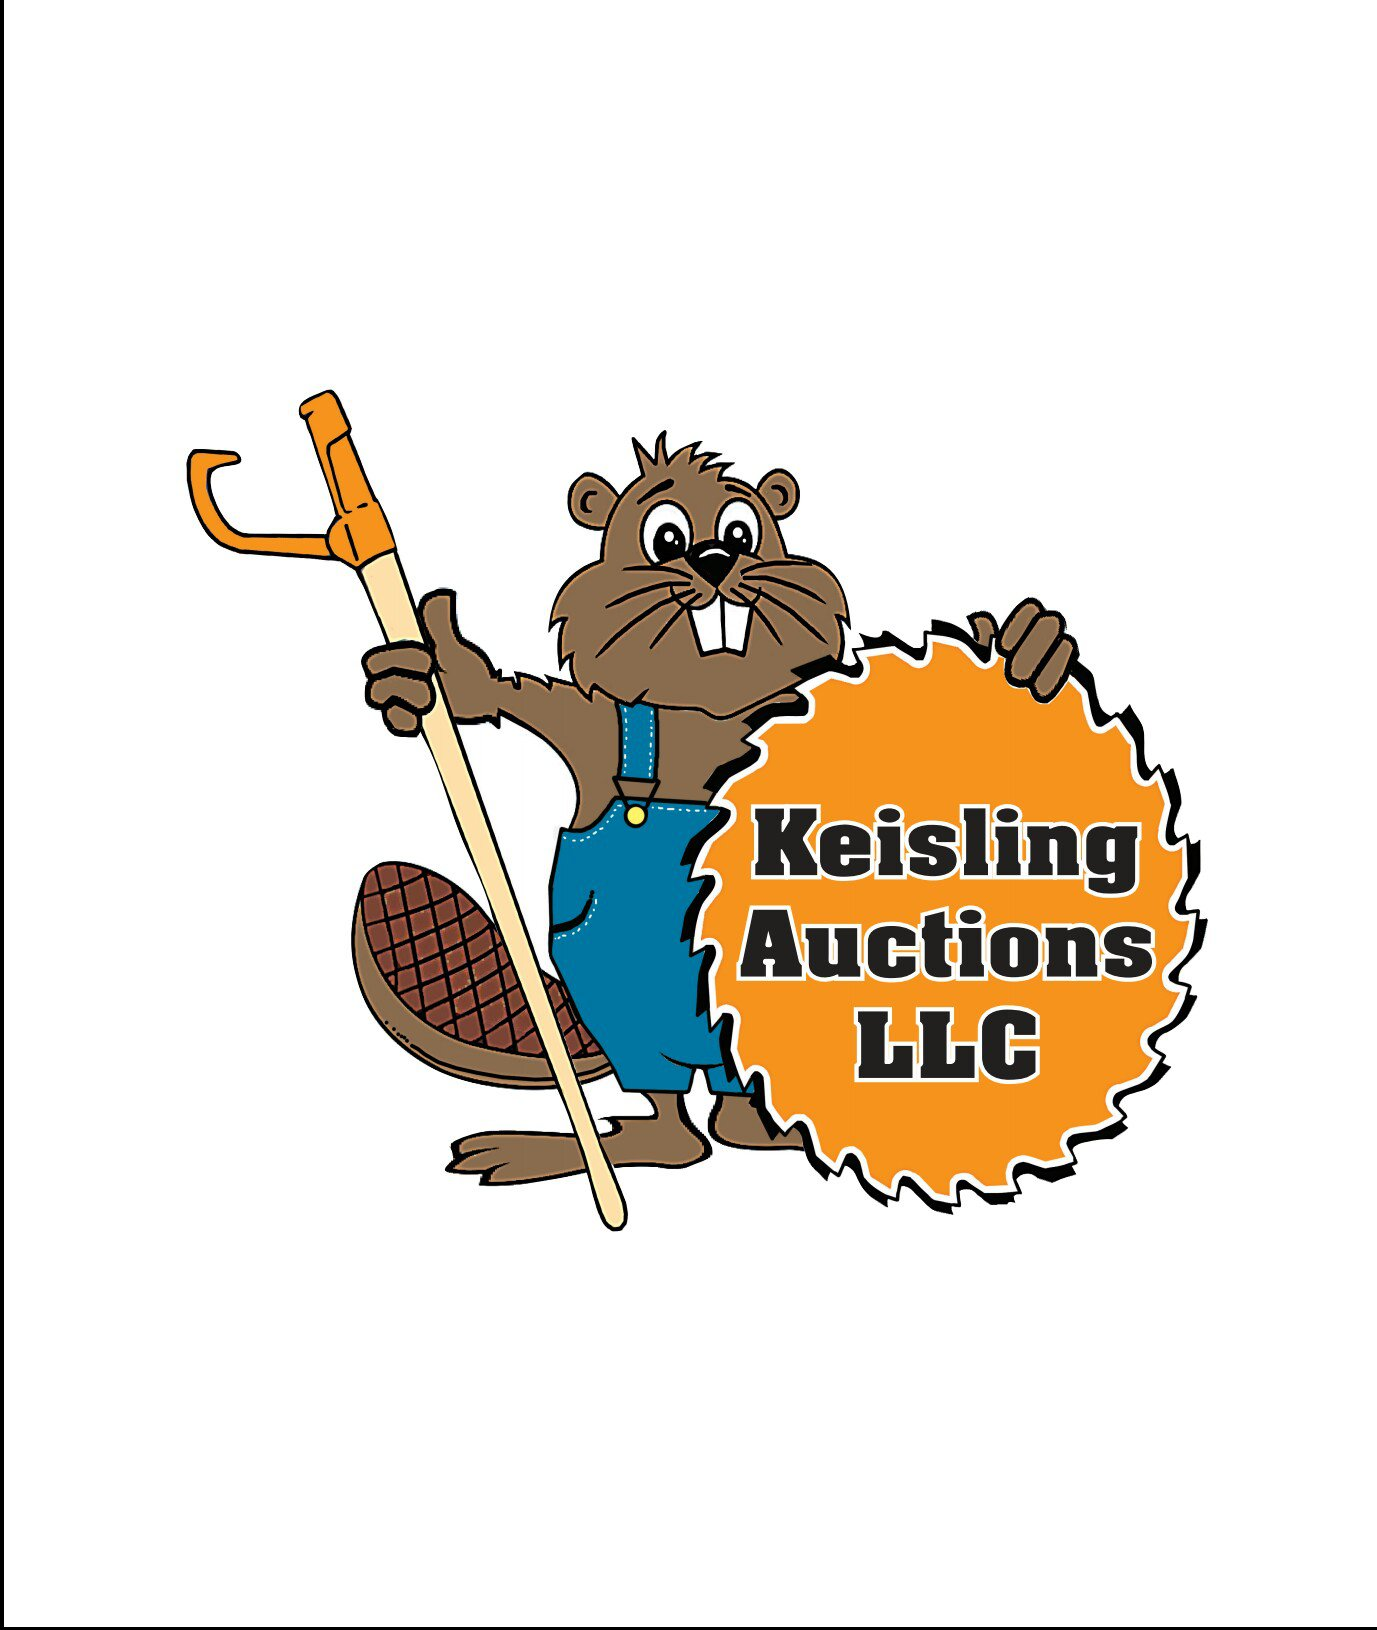 Keisling Auctions LLC